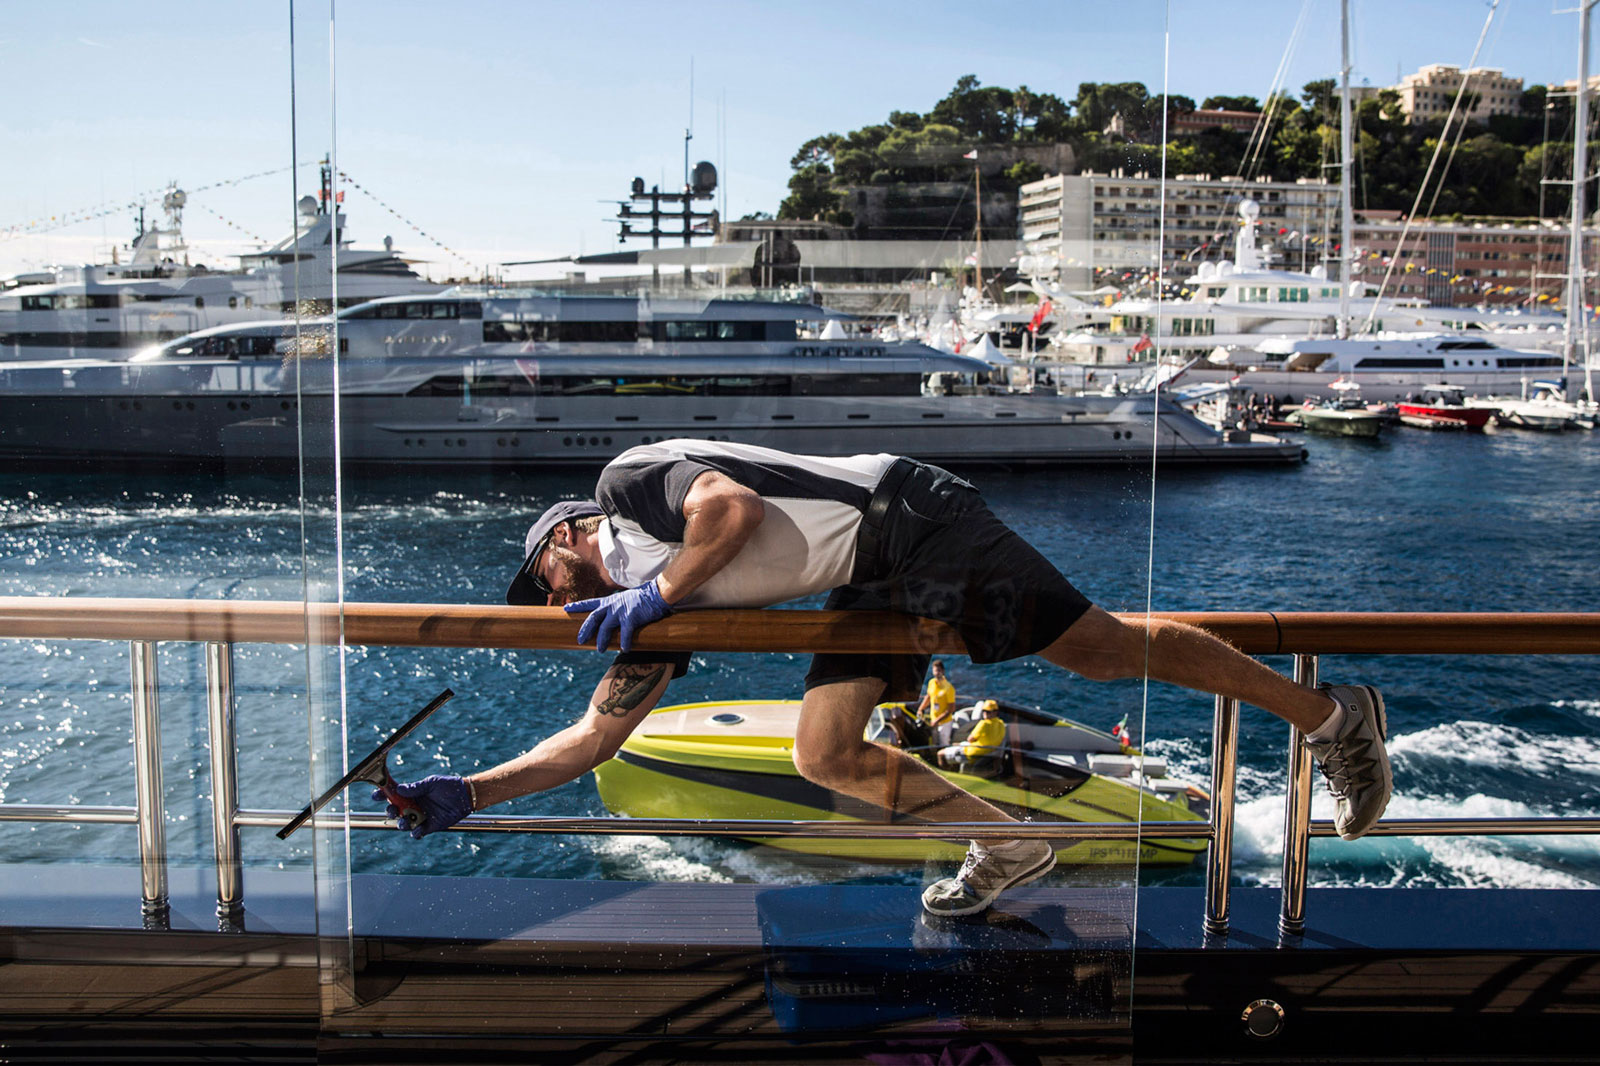 A crew member cleans windows aboard superyacht Solandge, built by Germany's Lürssen Werft and moored at the Monaco Yacht Show in Port Hercules, Monaco